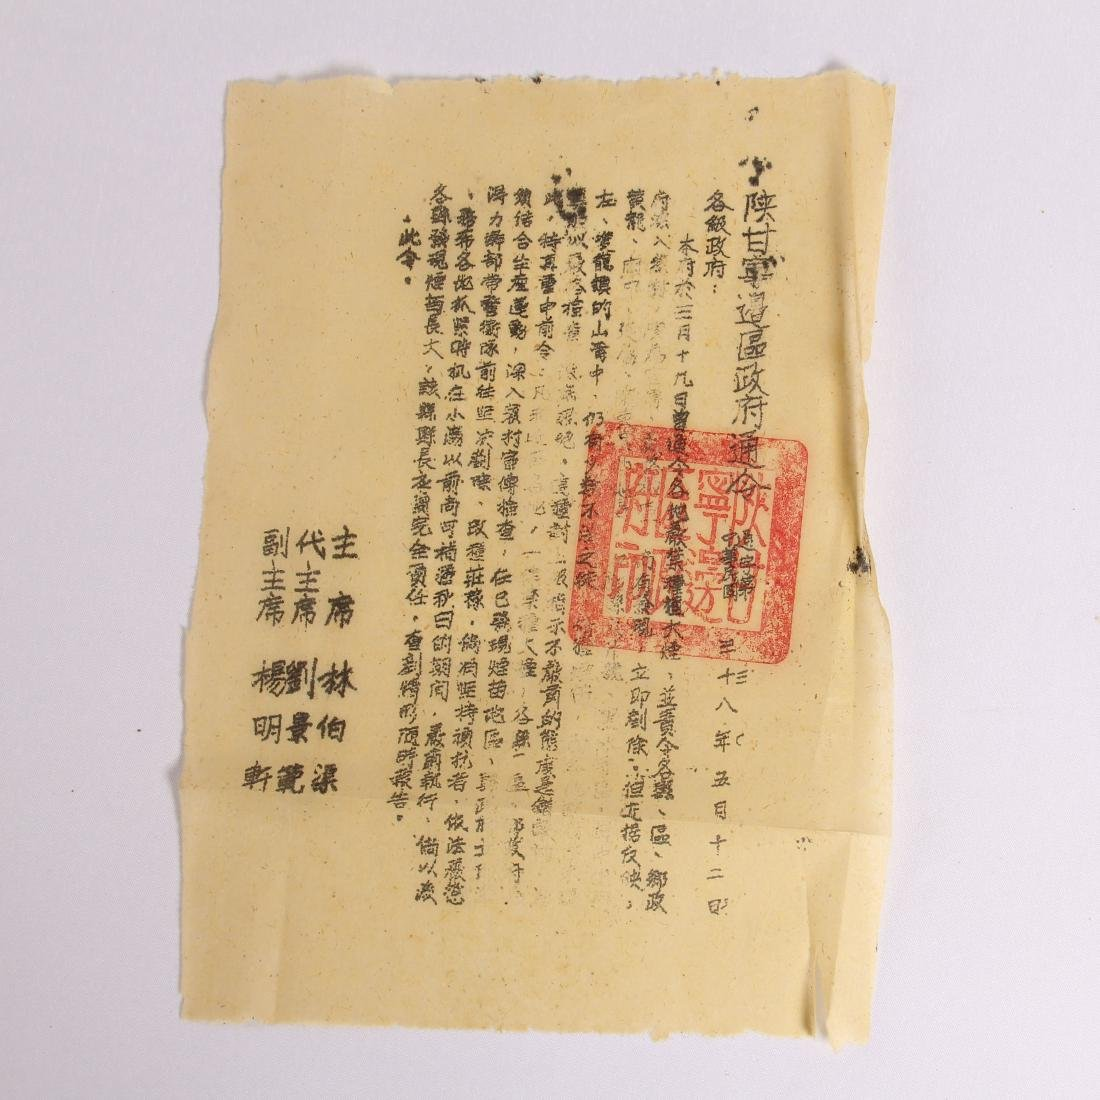 CHINESE SOVIET CHAIRMAN ORDER PRINT 1930S